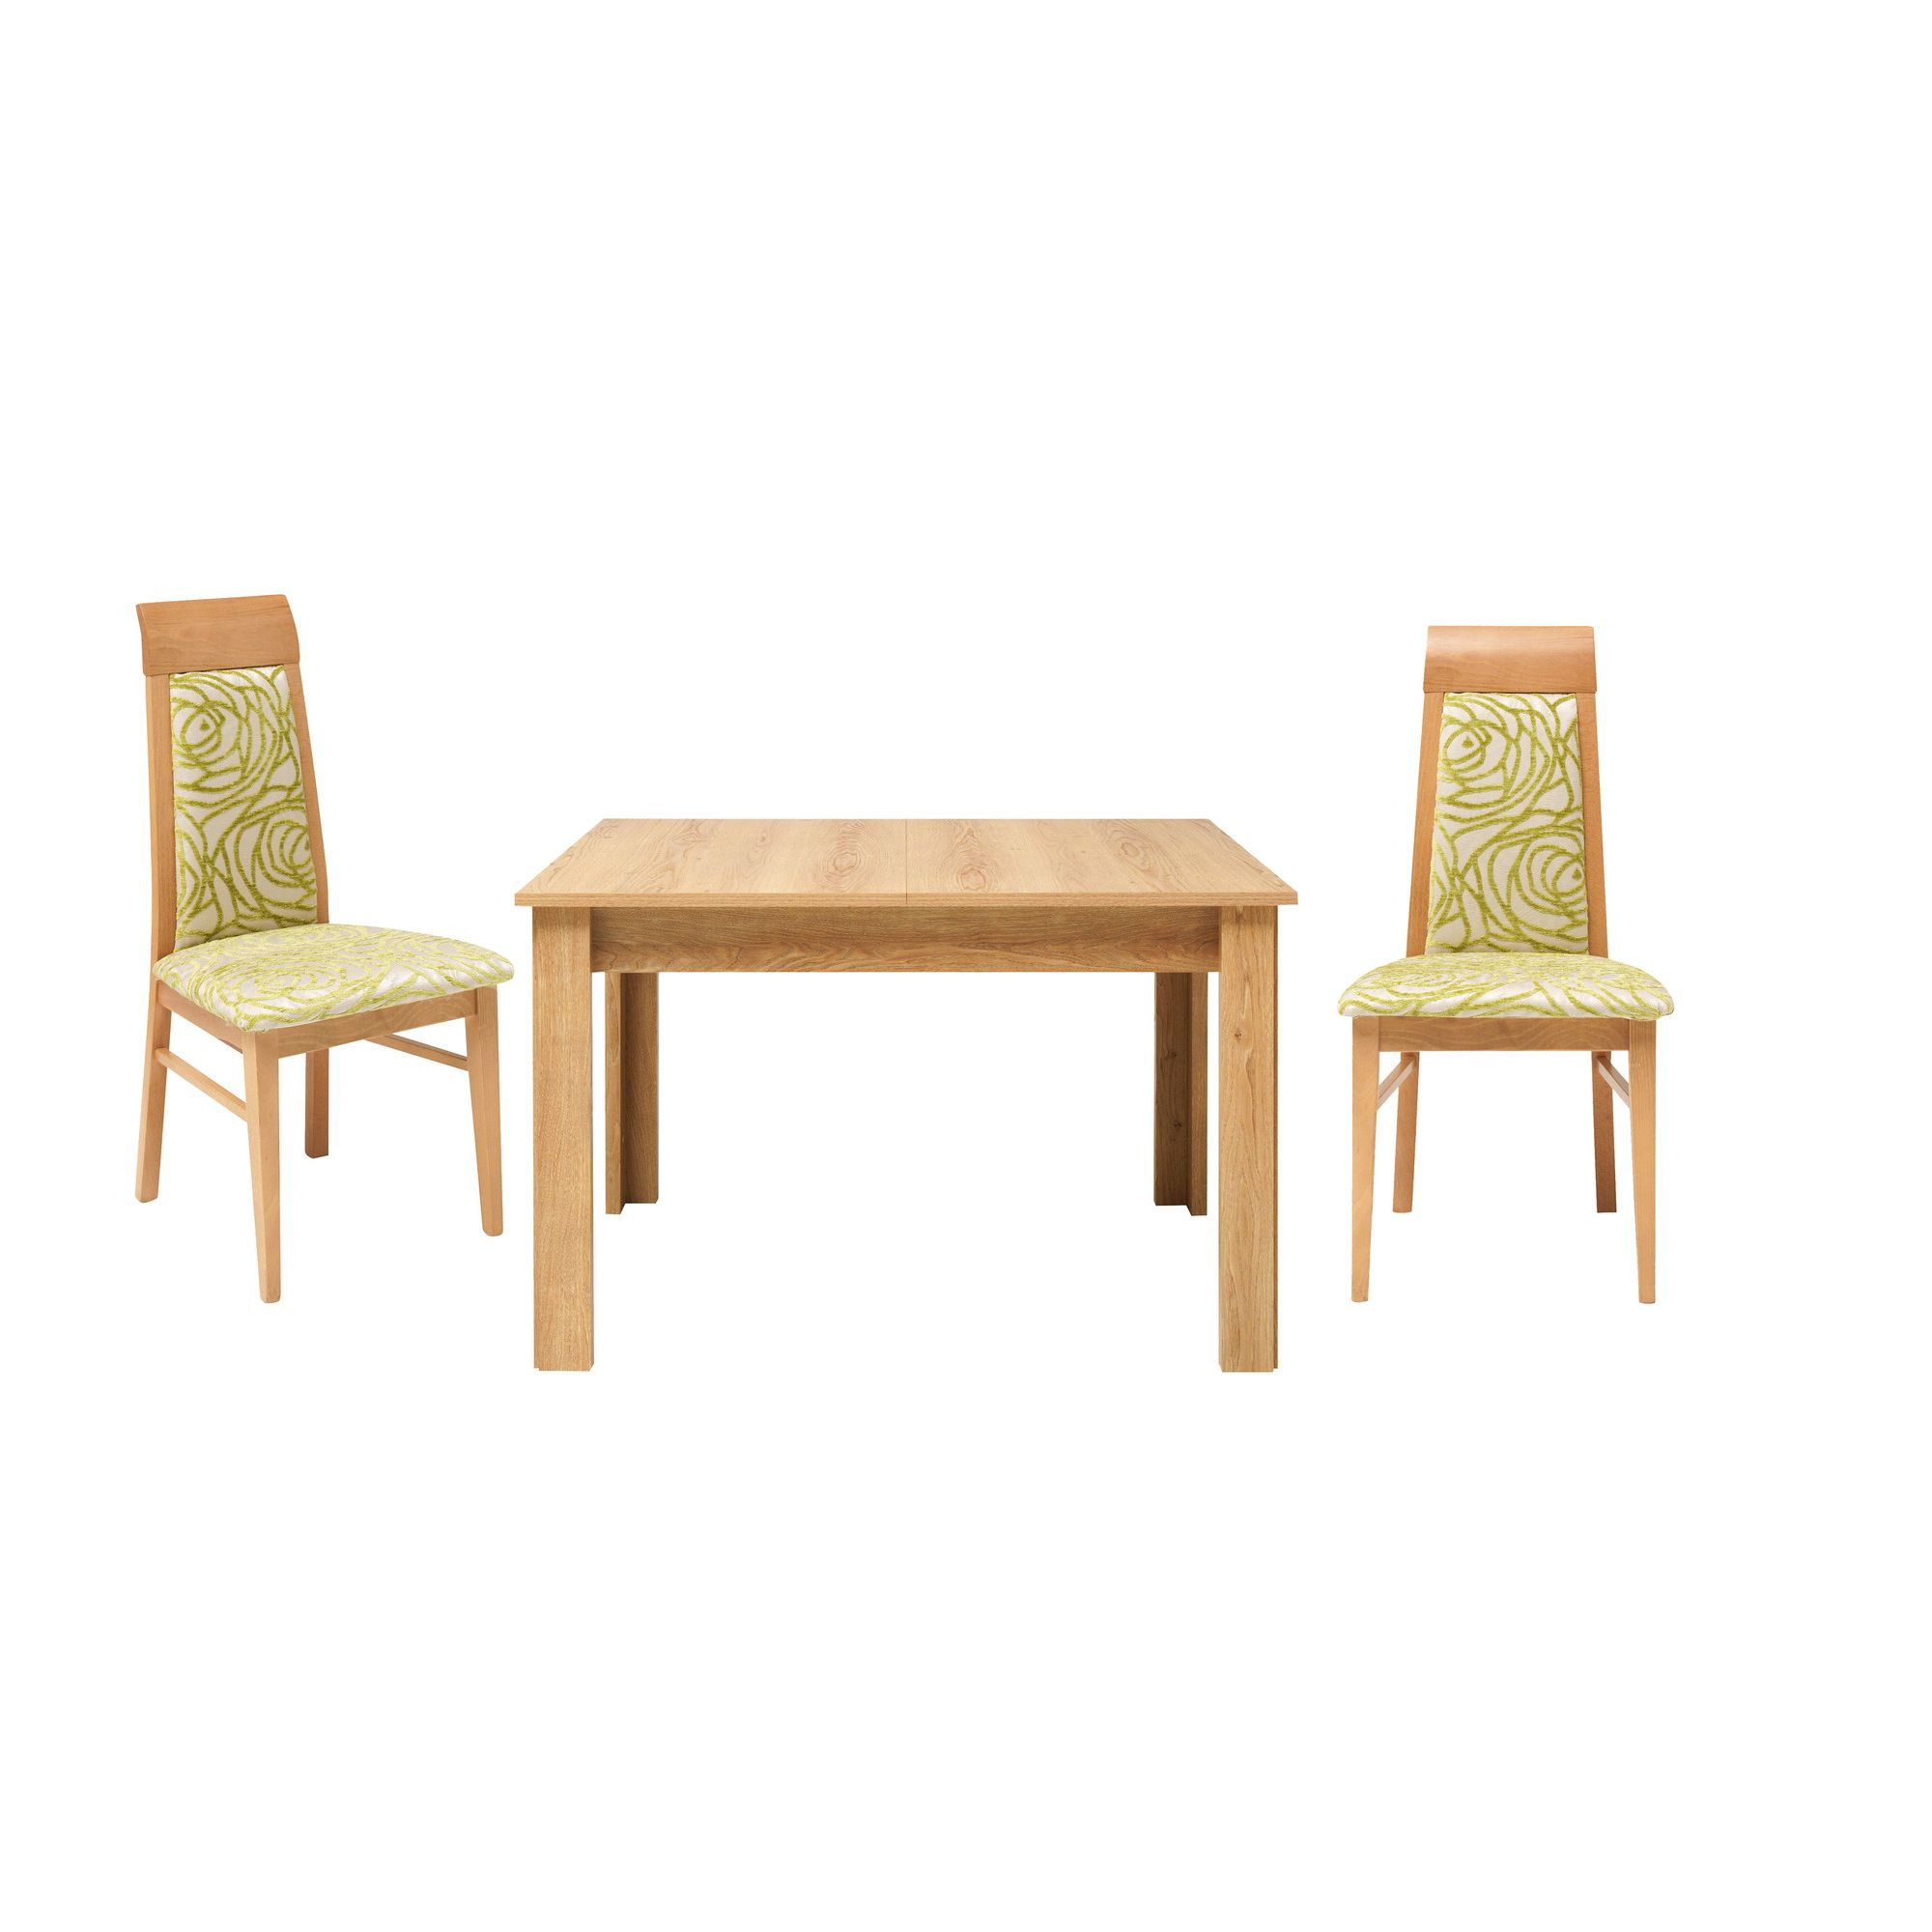 Caxton Darwin Dining Table Set with 4 Upholstered Chair in Chestnut at Tesco Direct